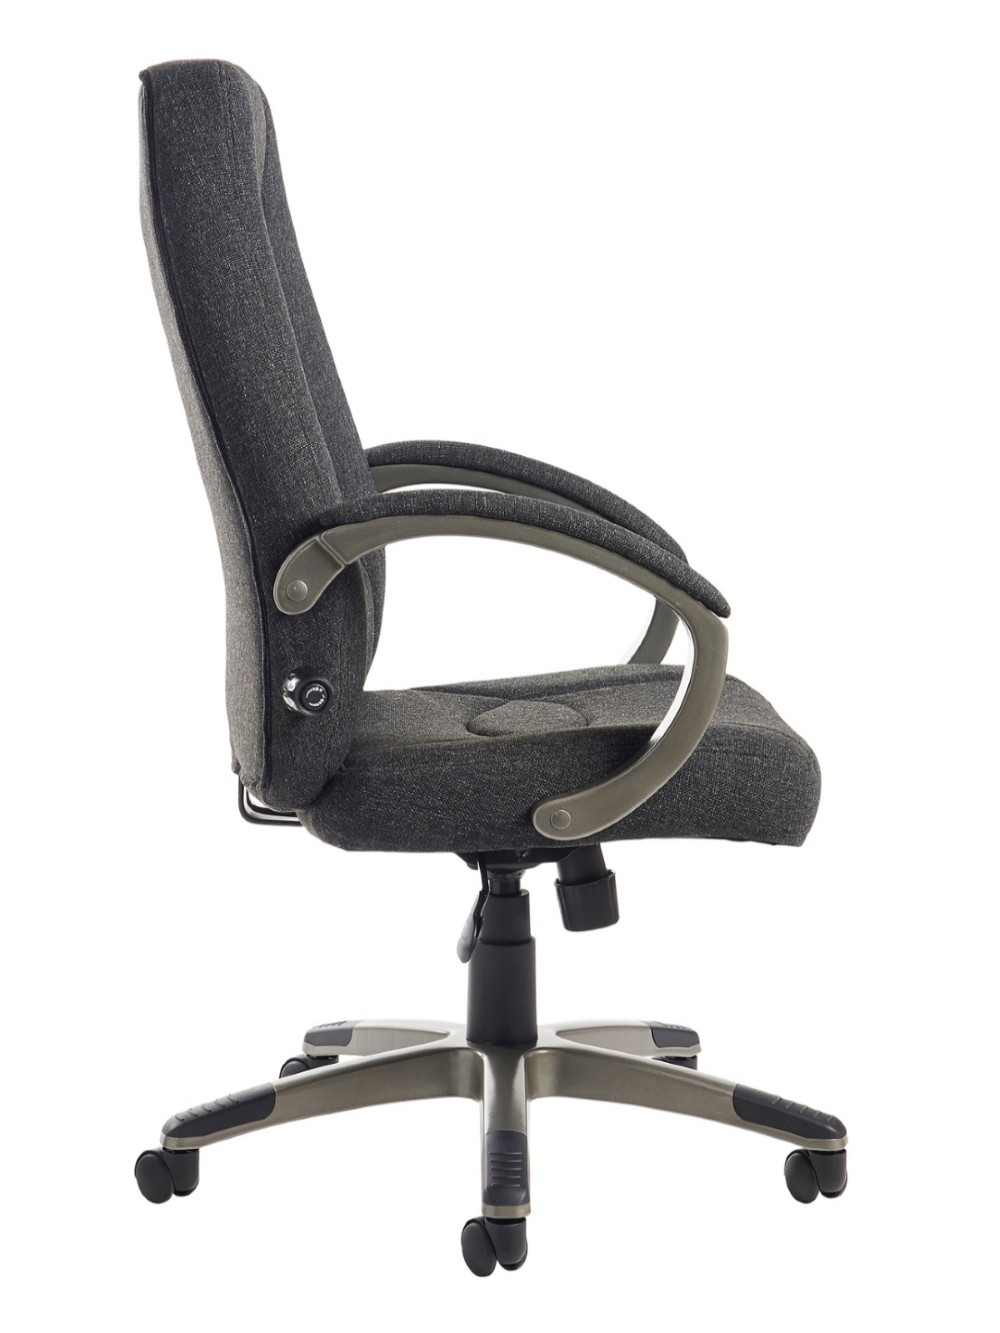 Lucca High Back Managers Chair LUC300T1